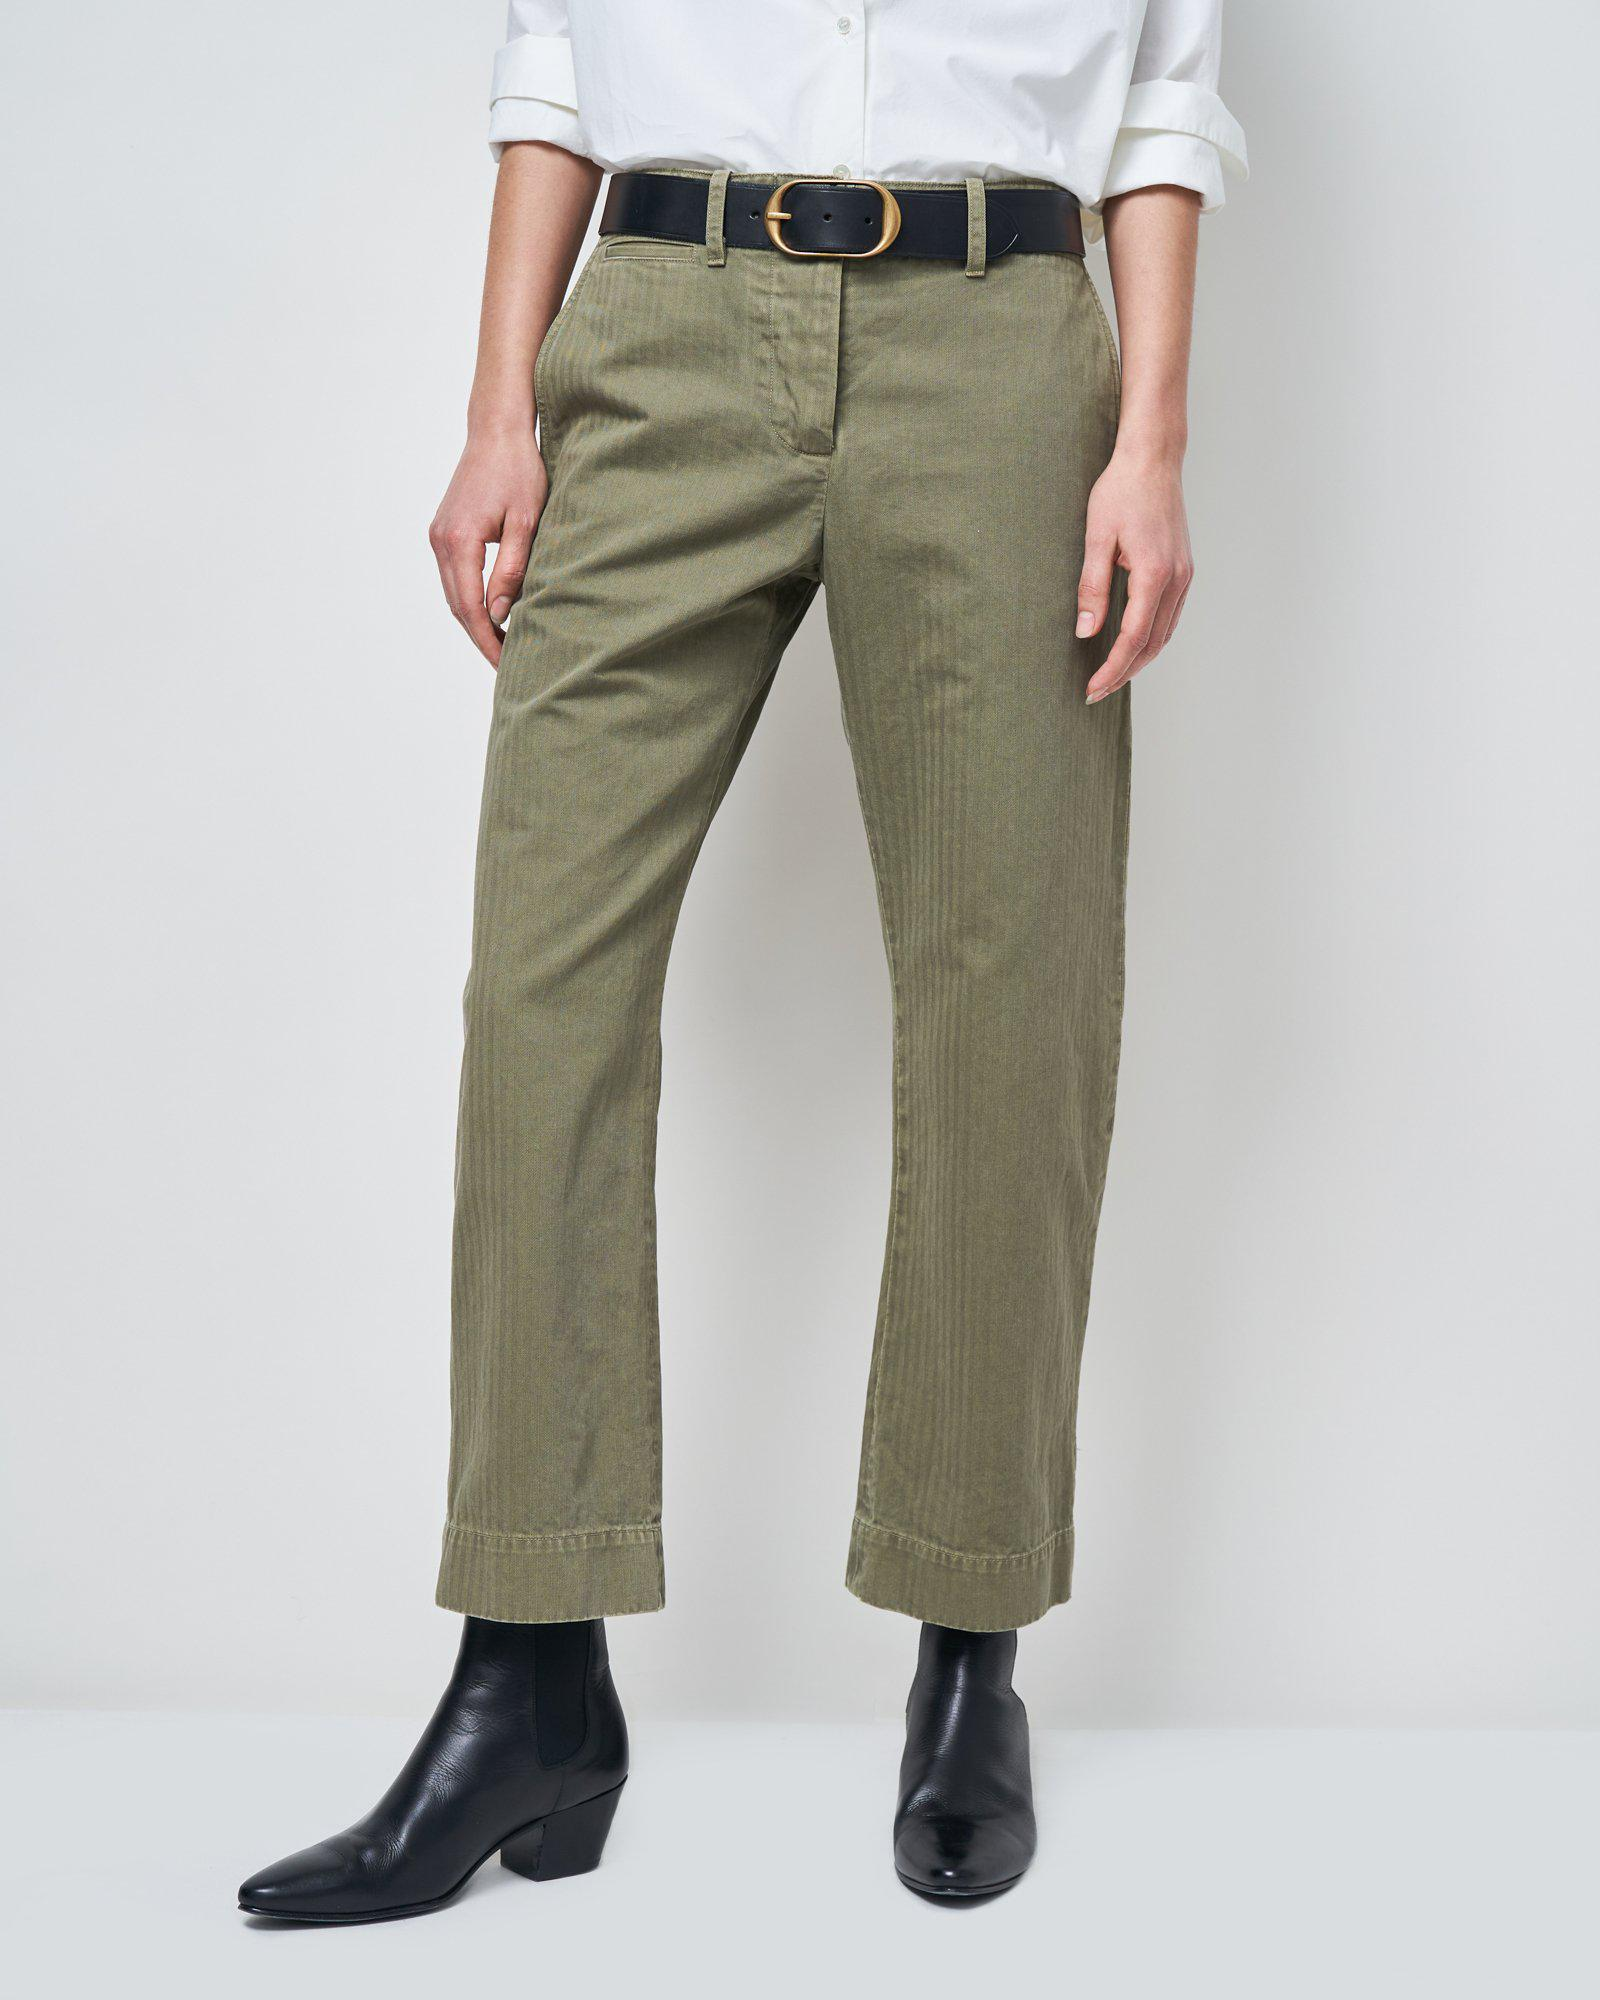 TOMBOY PANT WITH CUFF 1